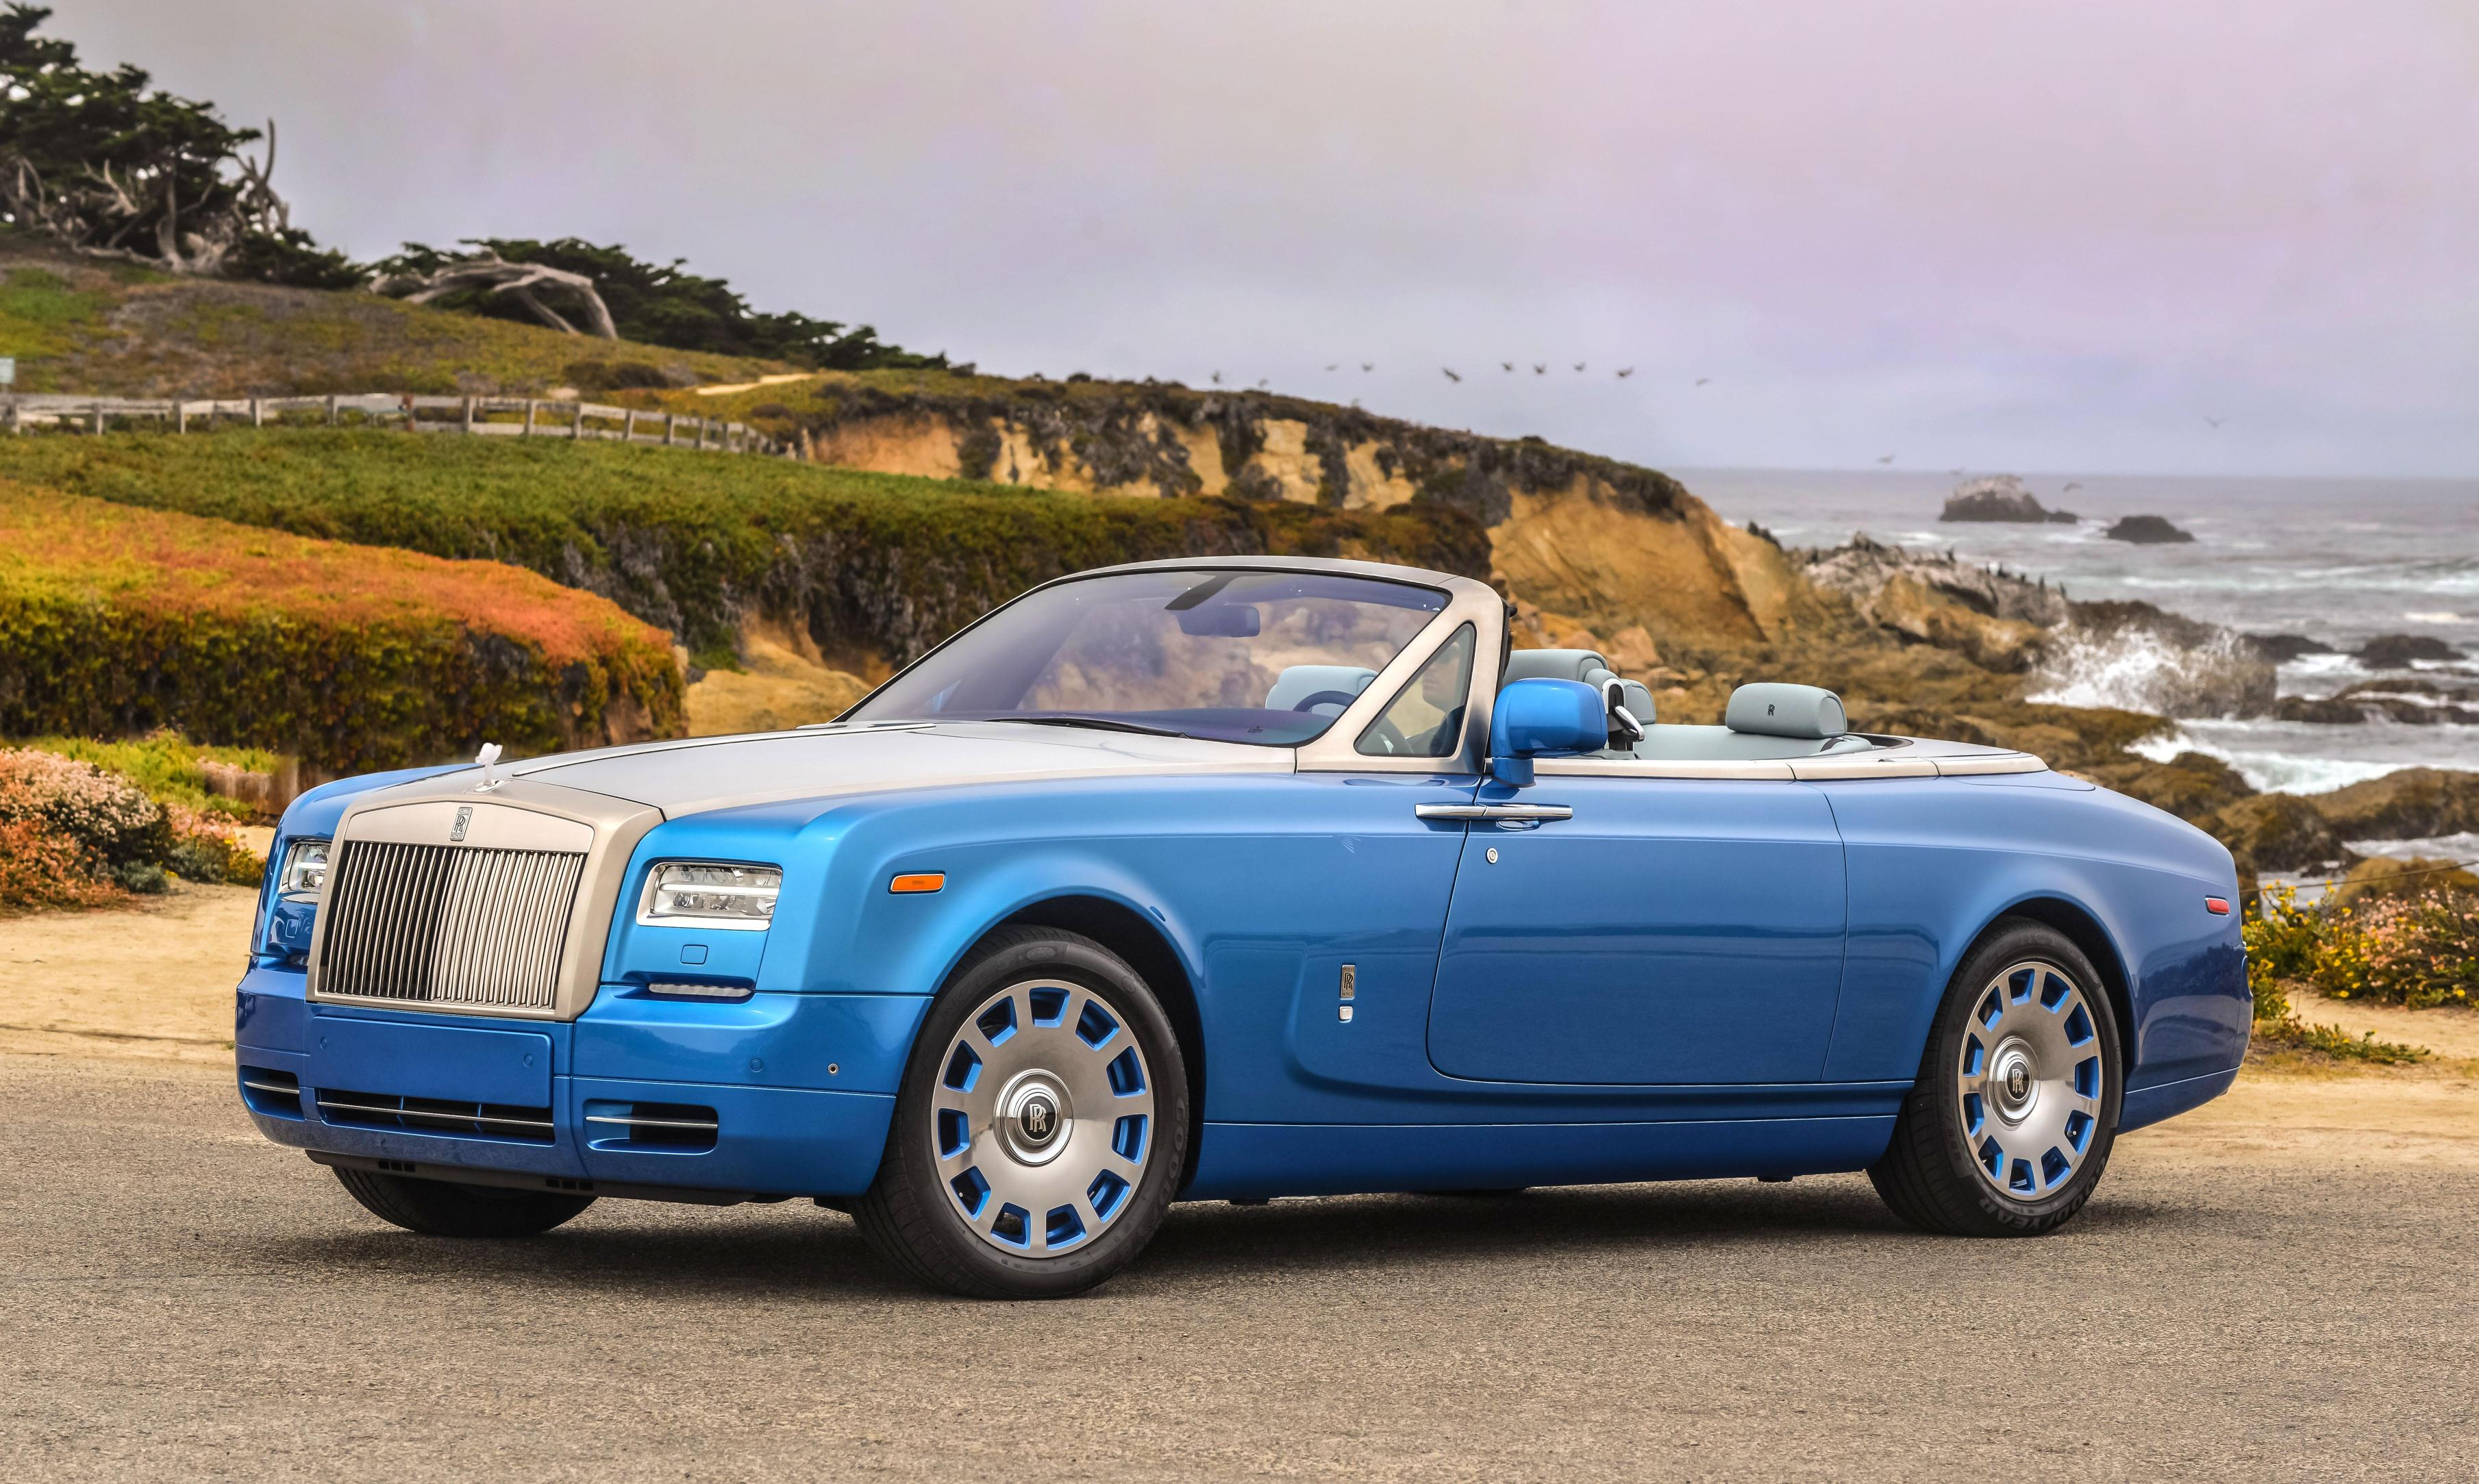 Rolls royce Phantom Drophead Coupe #4